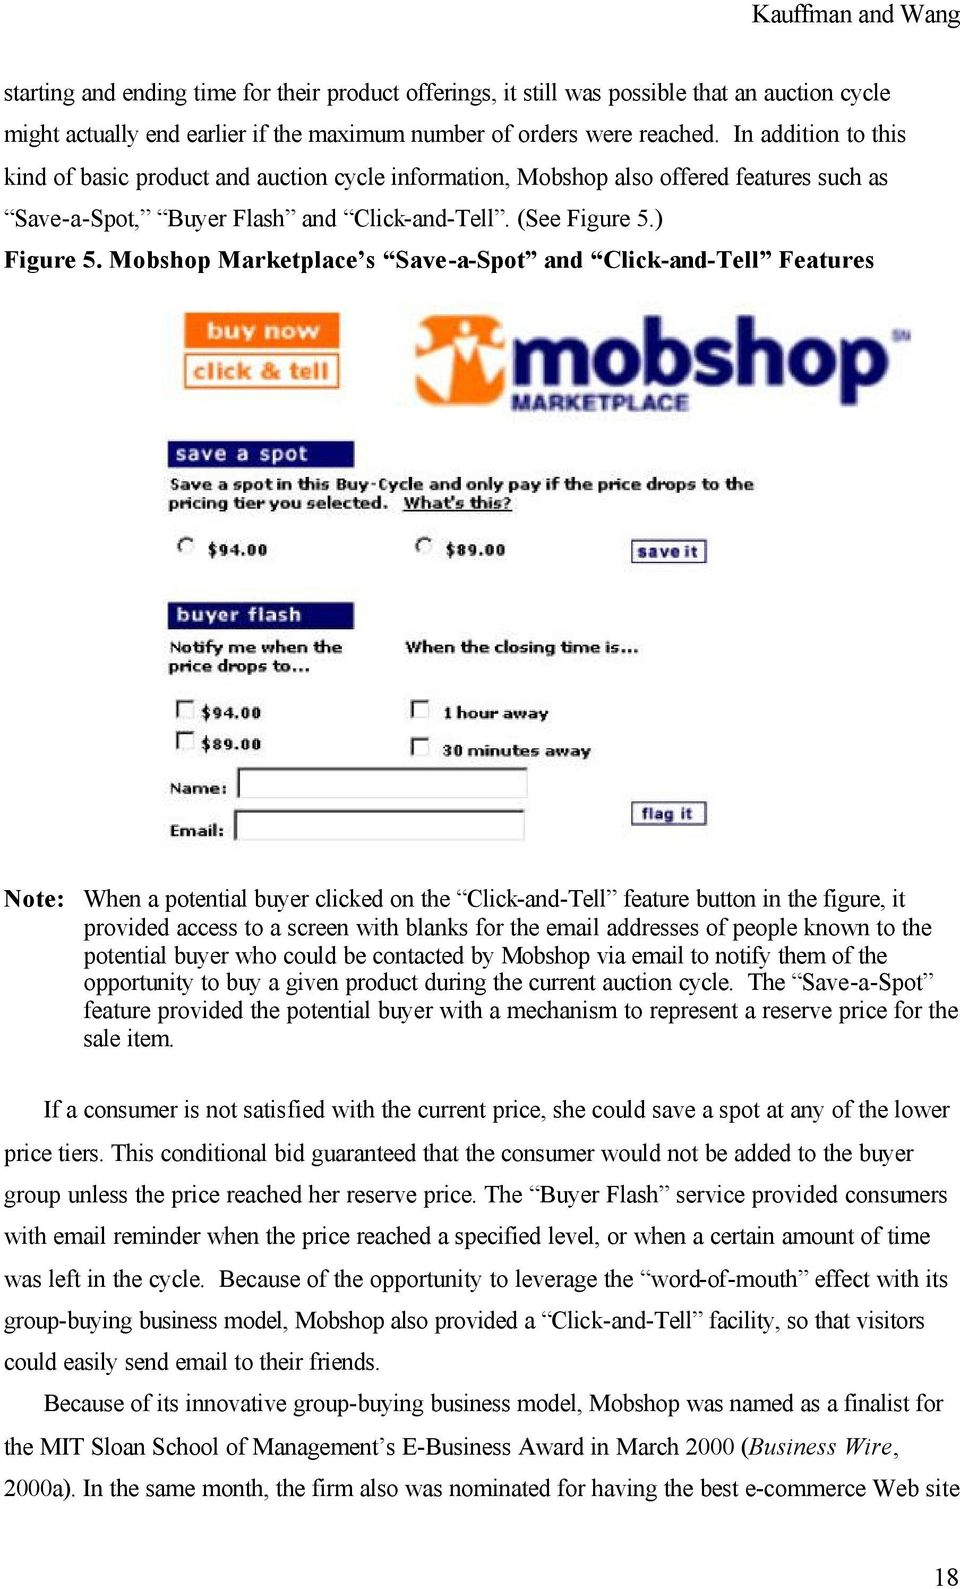 Mobshop Marketplace s Save-a-Spot and Click-and-Tell Features Note: When a potential buyer clicked on the Click-and-Tell feature button in the figure, it provided access to a screen with blanks for